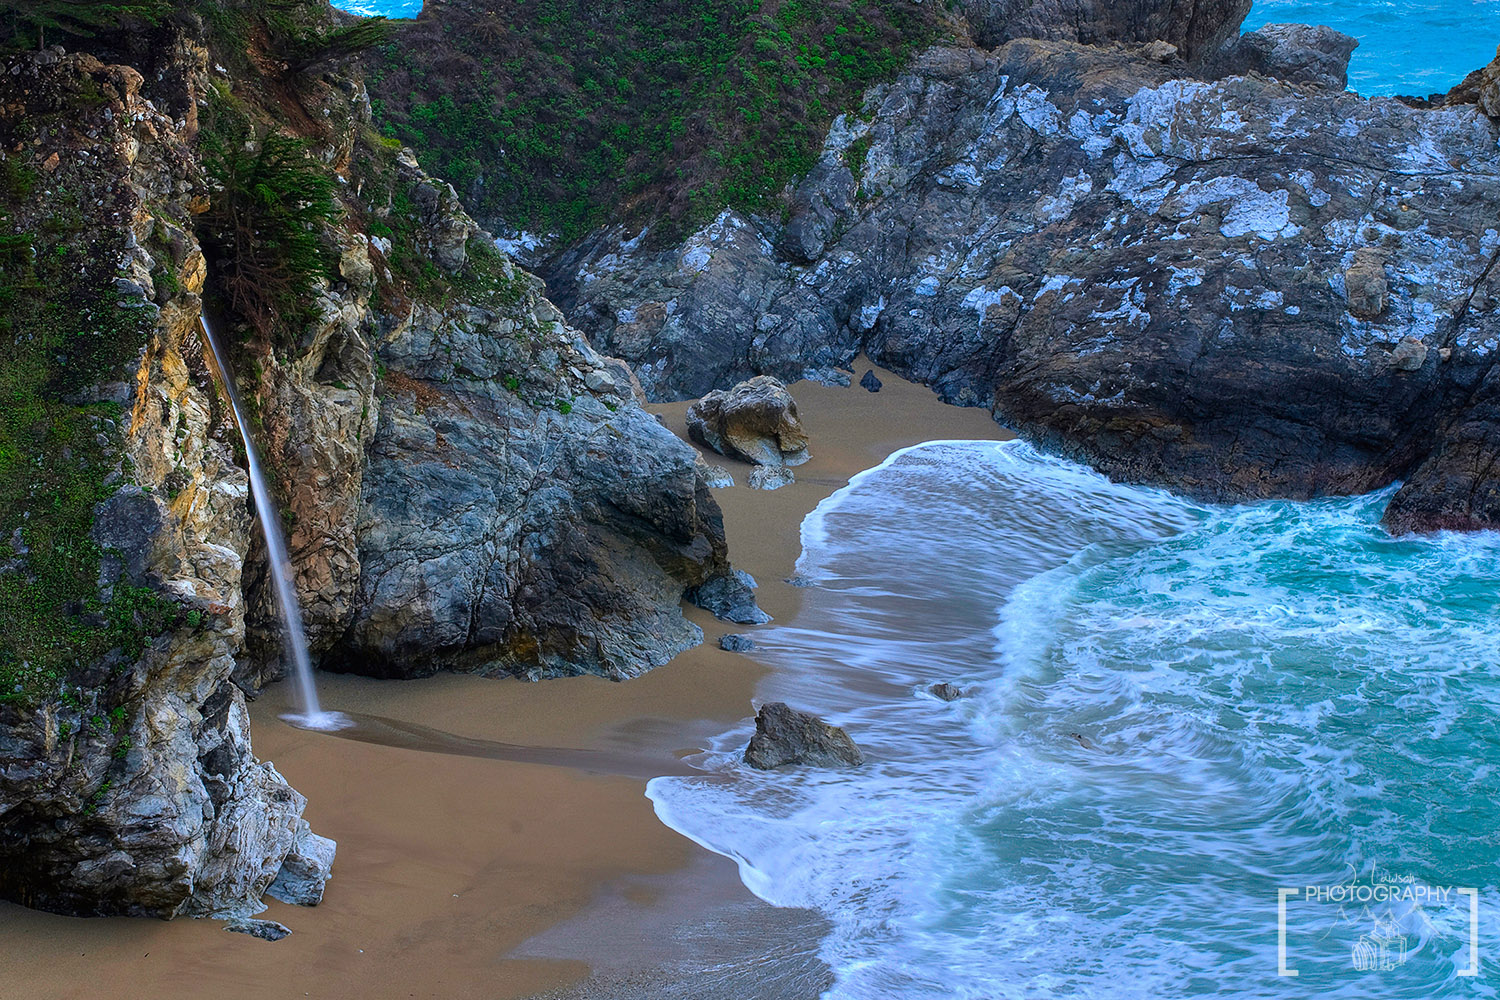 McWay Falls, Big Sur, California.  Photo Credit: Jared Lawson Photography